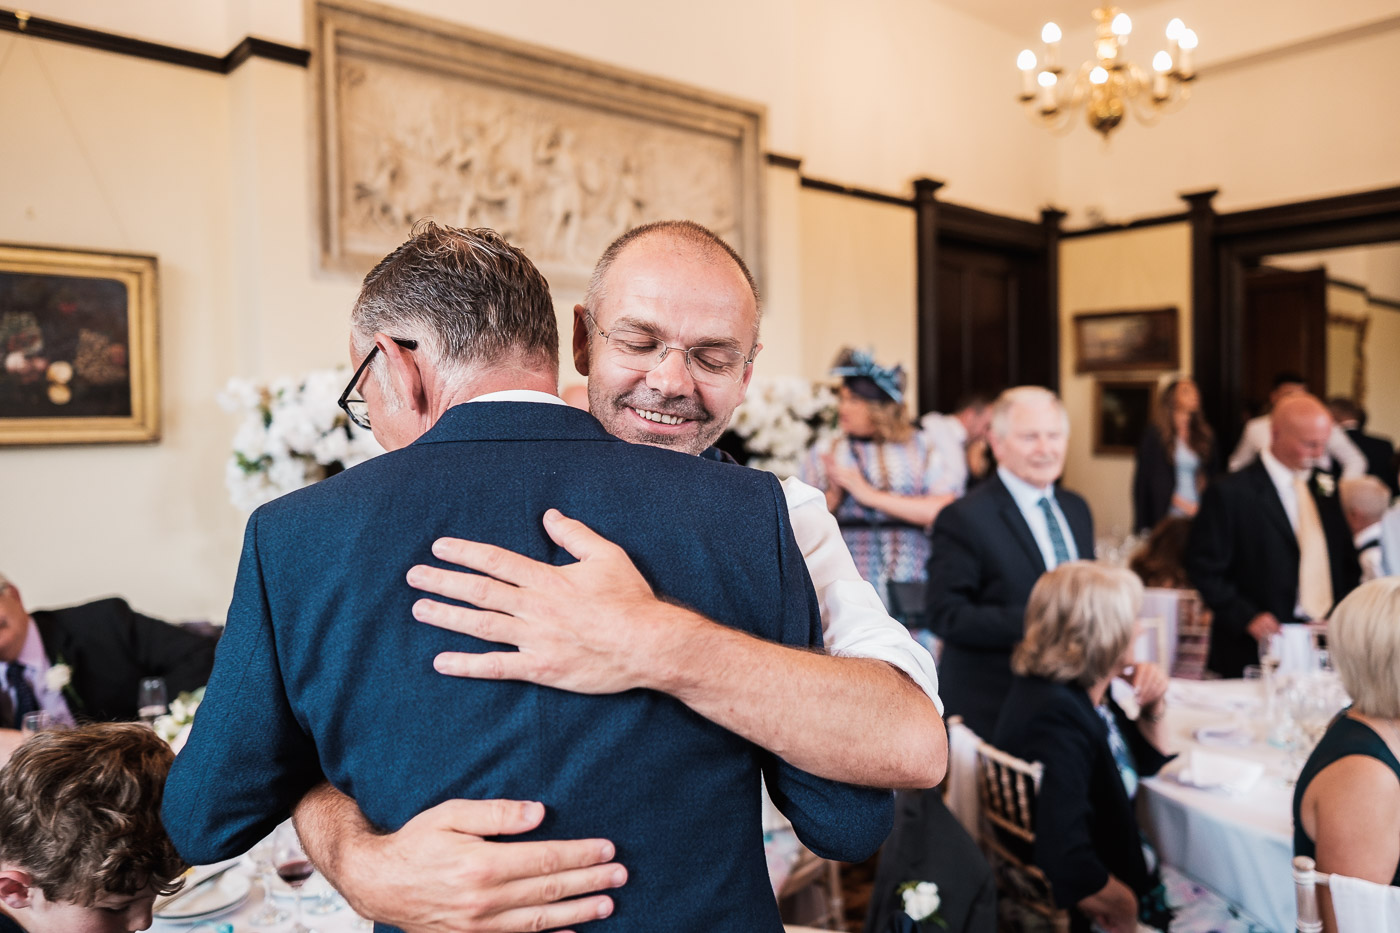 Groom embraces best man after speeches at Walton hall in warrington